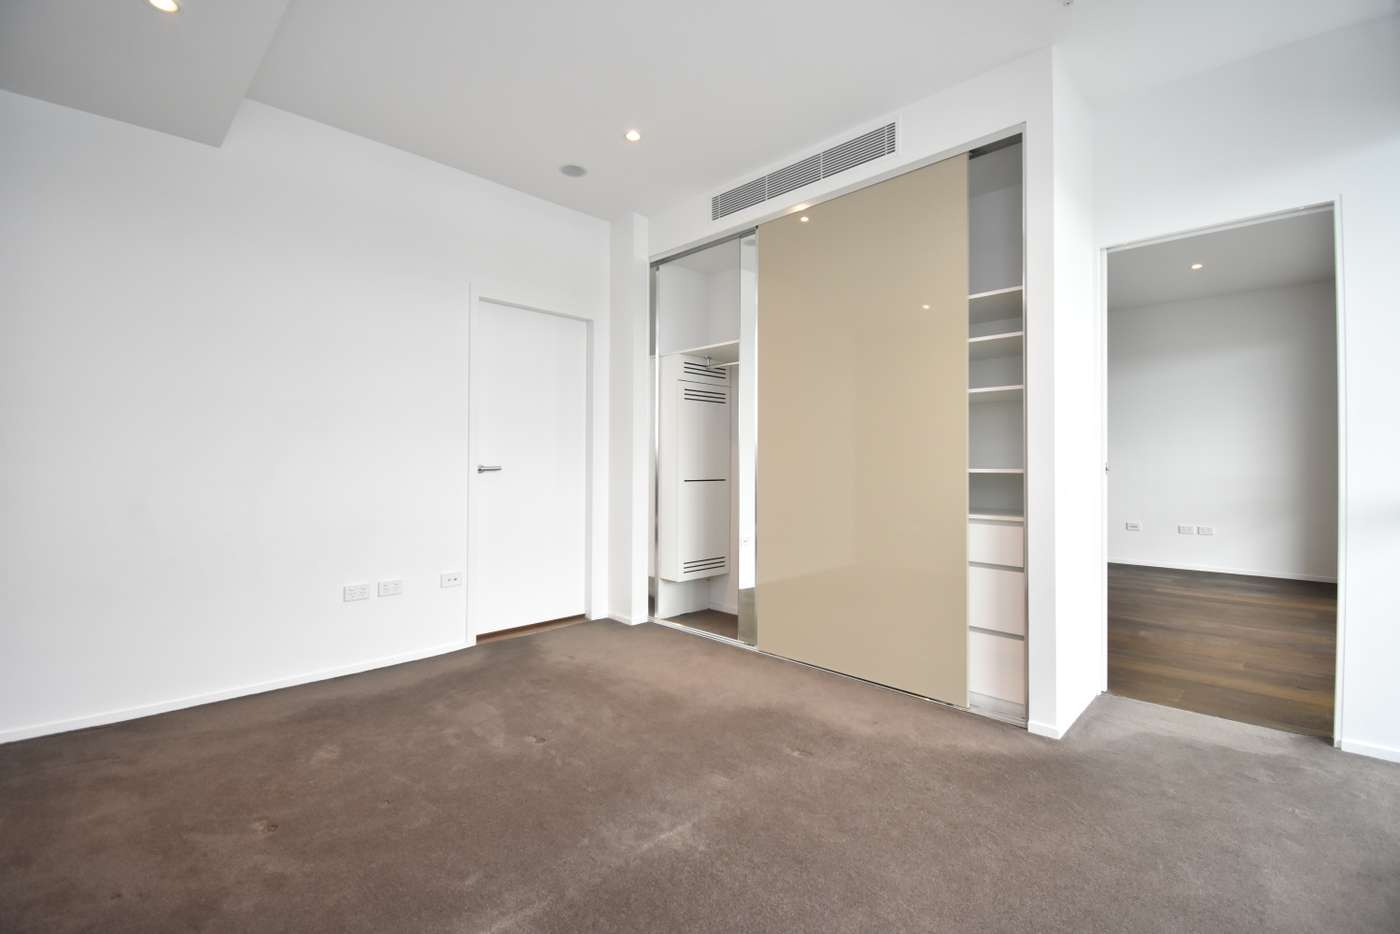 Sixth view of Homely apartment listing, Unit 1003/6 Galloway St, Mascot NSW 2020